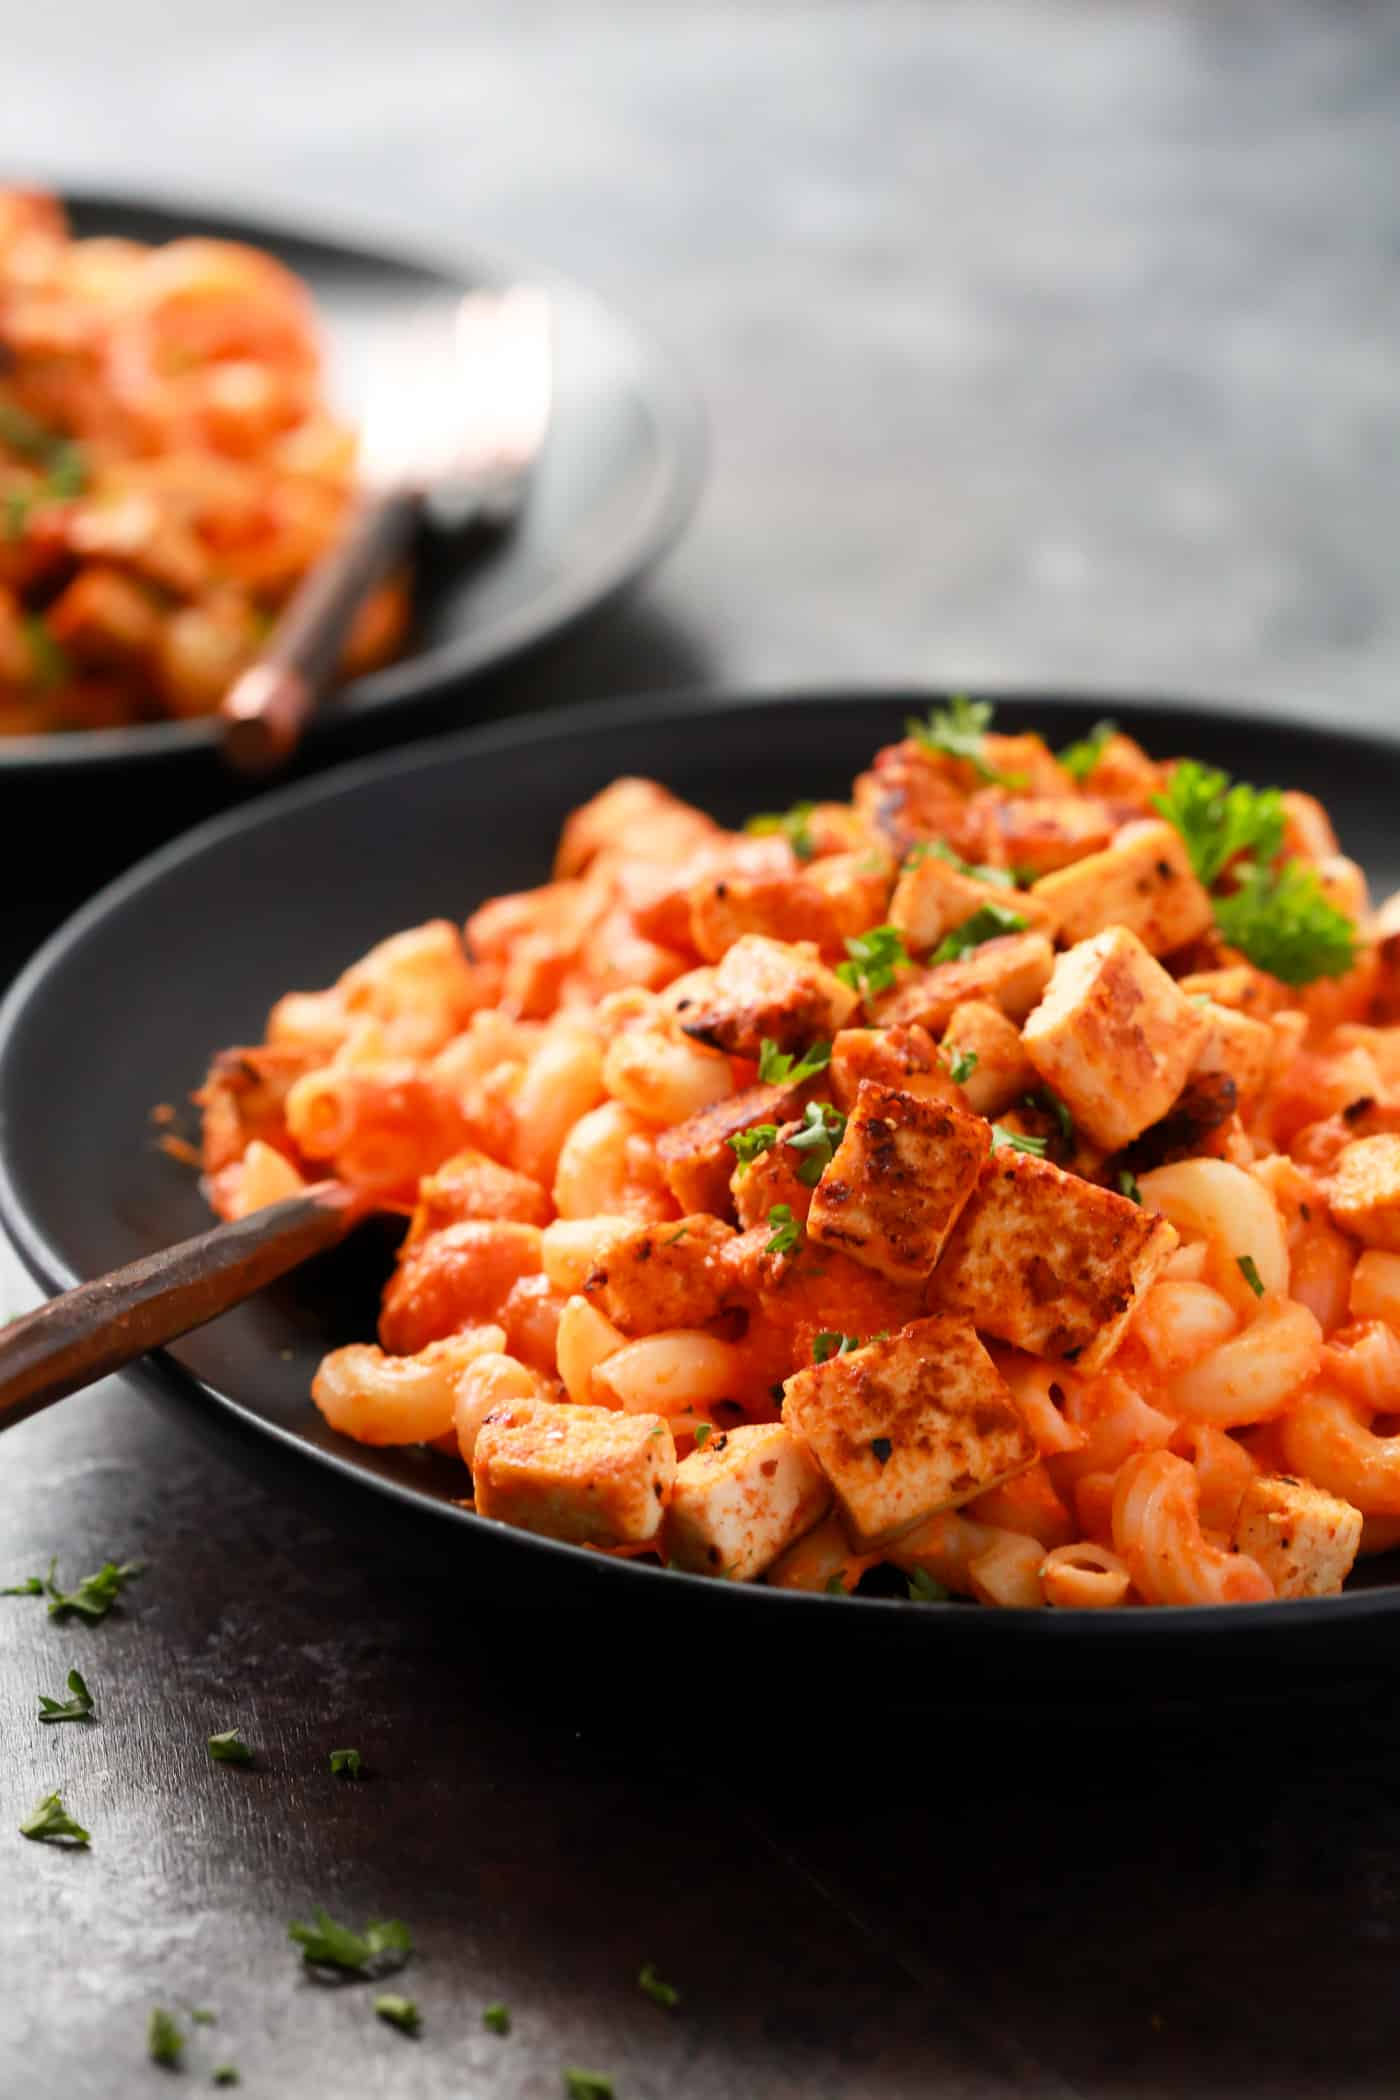 This Gluten-free Roasted Red Bell Pepper Pasta is also vegan, made with cashews, roasted red bell pepper, red onions, garlic and almond milk. And it's topped with crispy and super flavorful tofu.